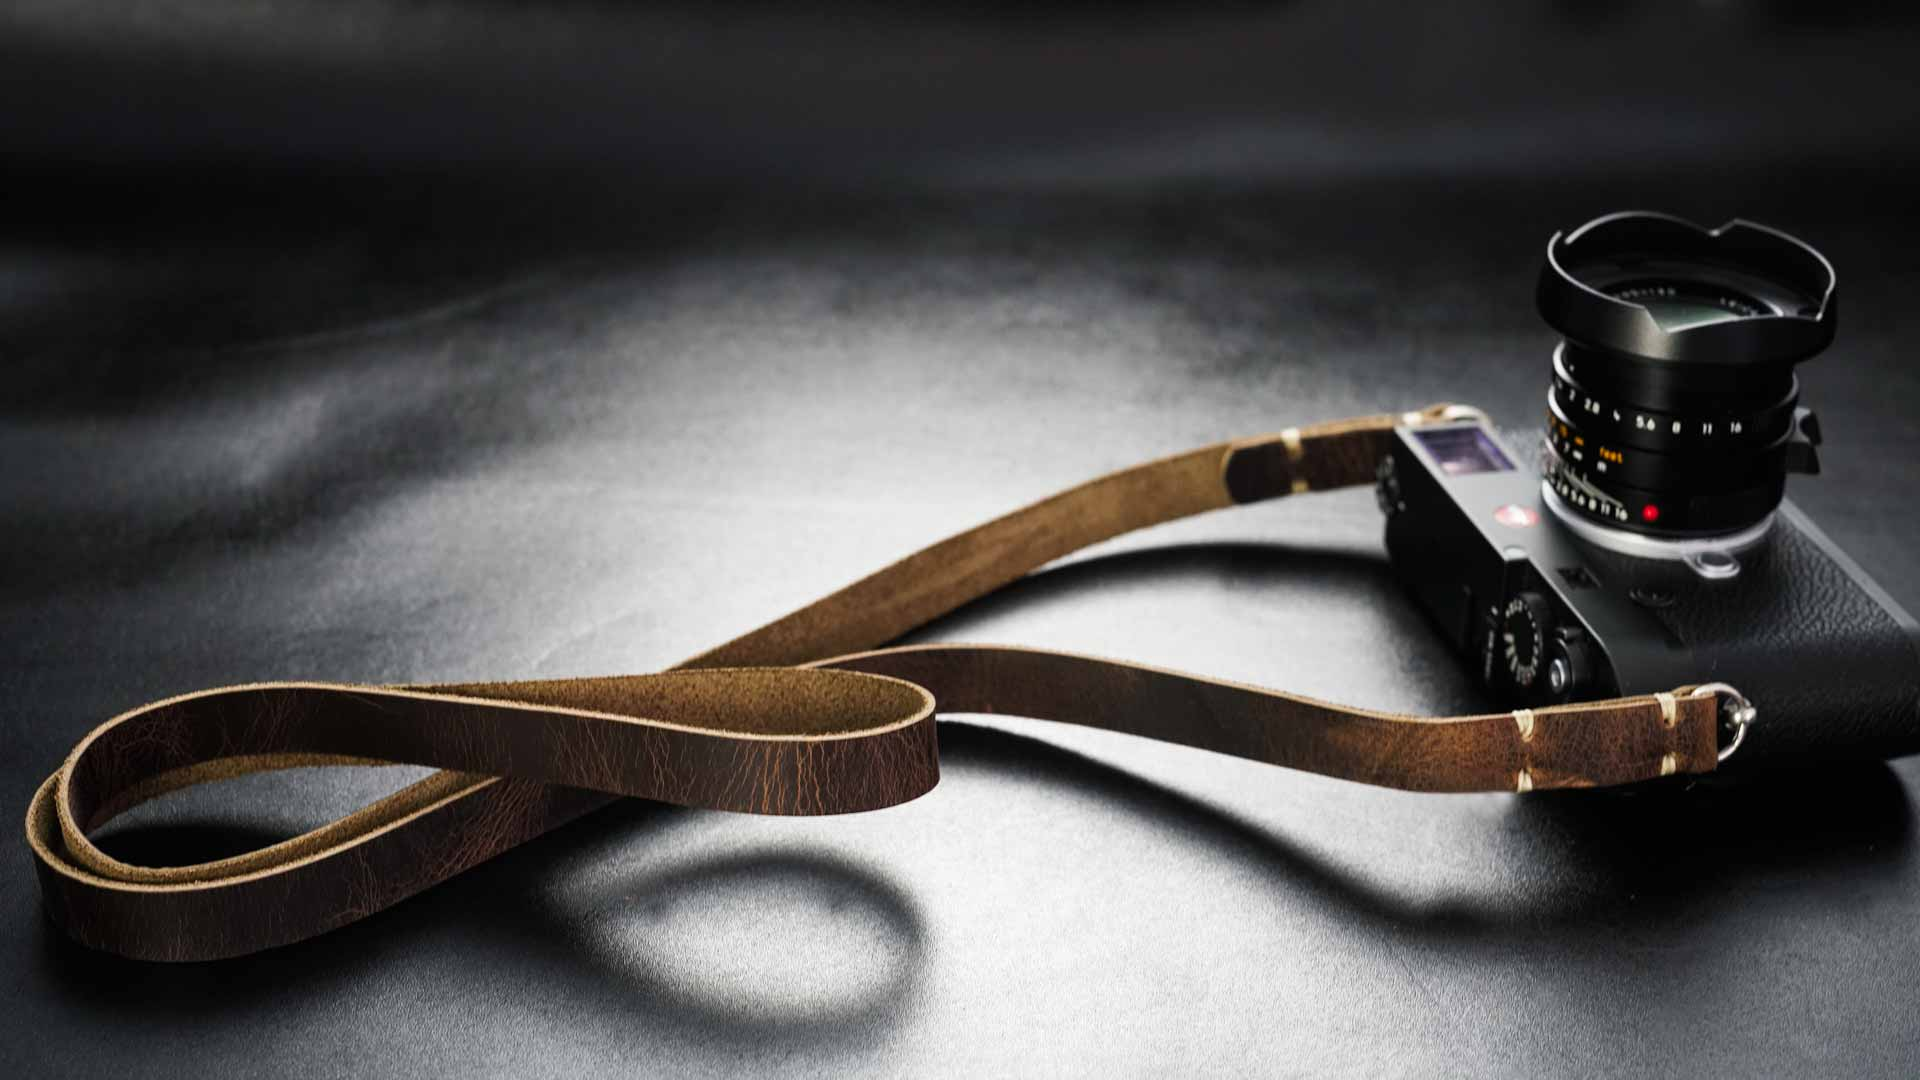 classic strap, leather camera strap, handmade leather camera strap, leica camera strap, mirrorless camera strap, handmade camera strap, dslr camera strap, brown camera strap